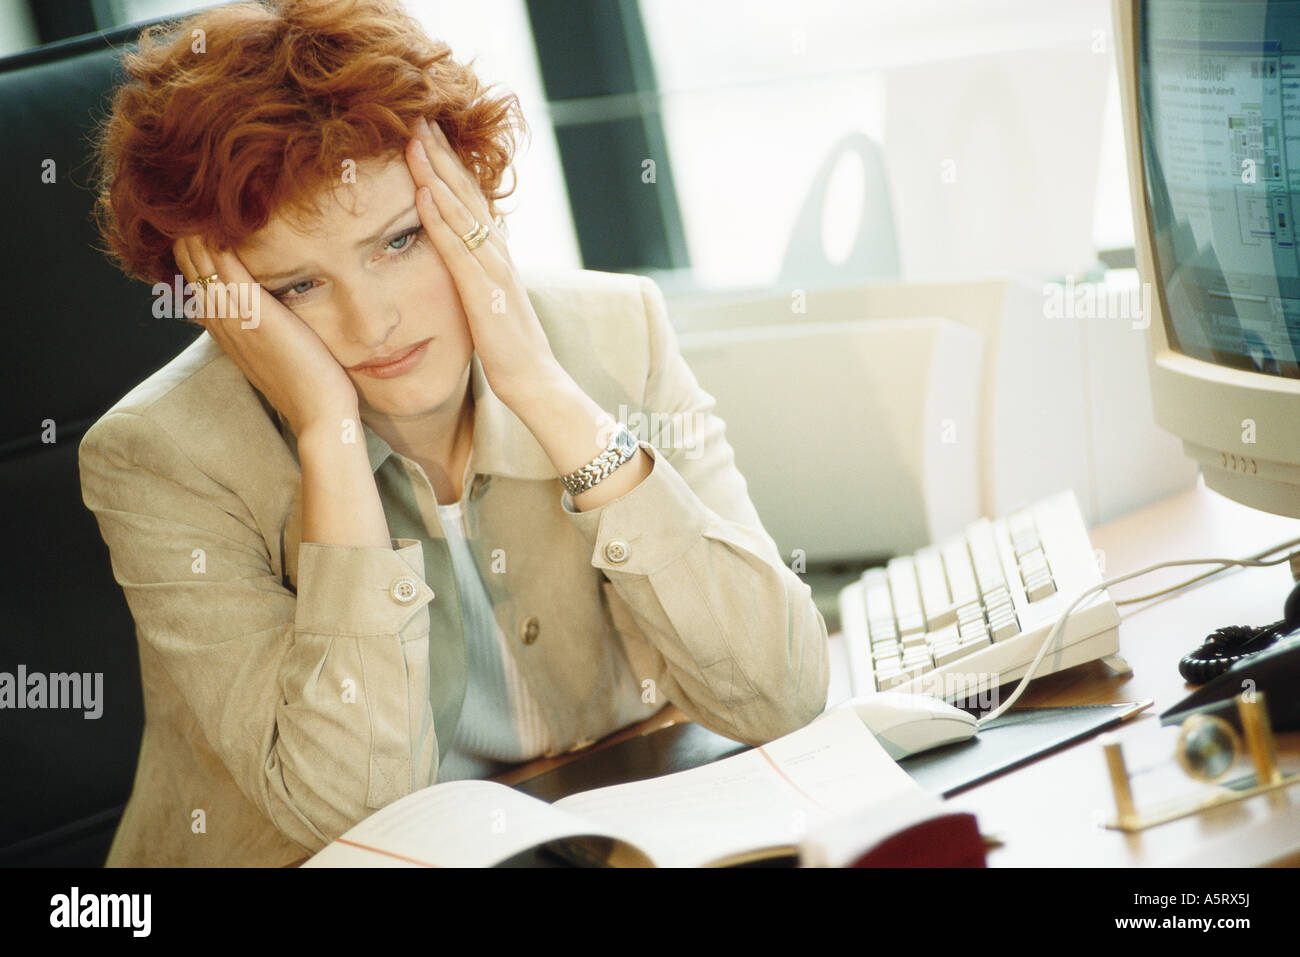 Businesswoman sitting at desk, holding head - Stock Image